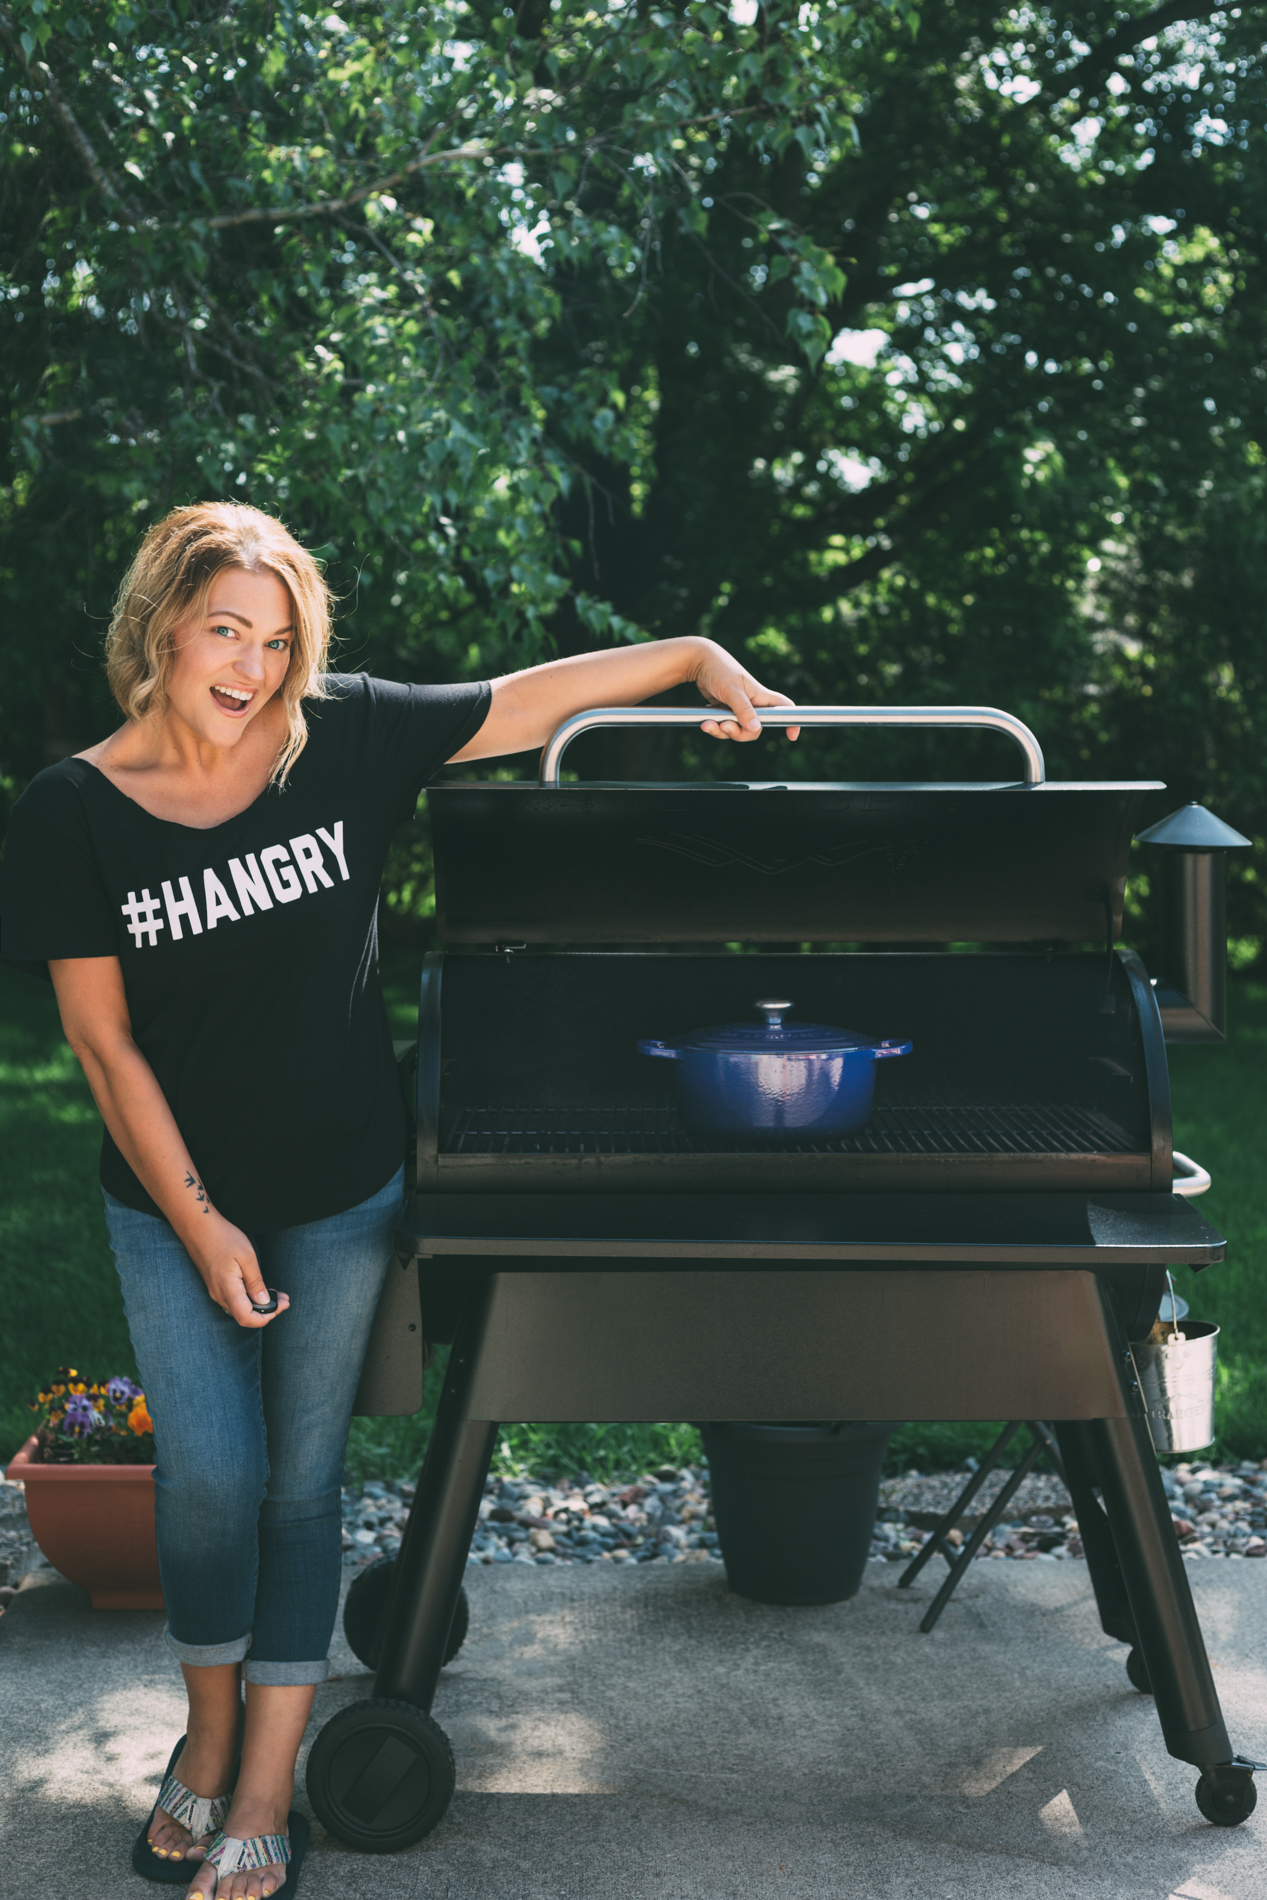 Minneapolis food blogger Karly Gomez standing next to a traeger grill with a dutch oven inside of it outside on a cement patio with a green backyard